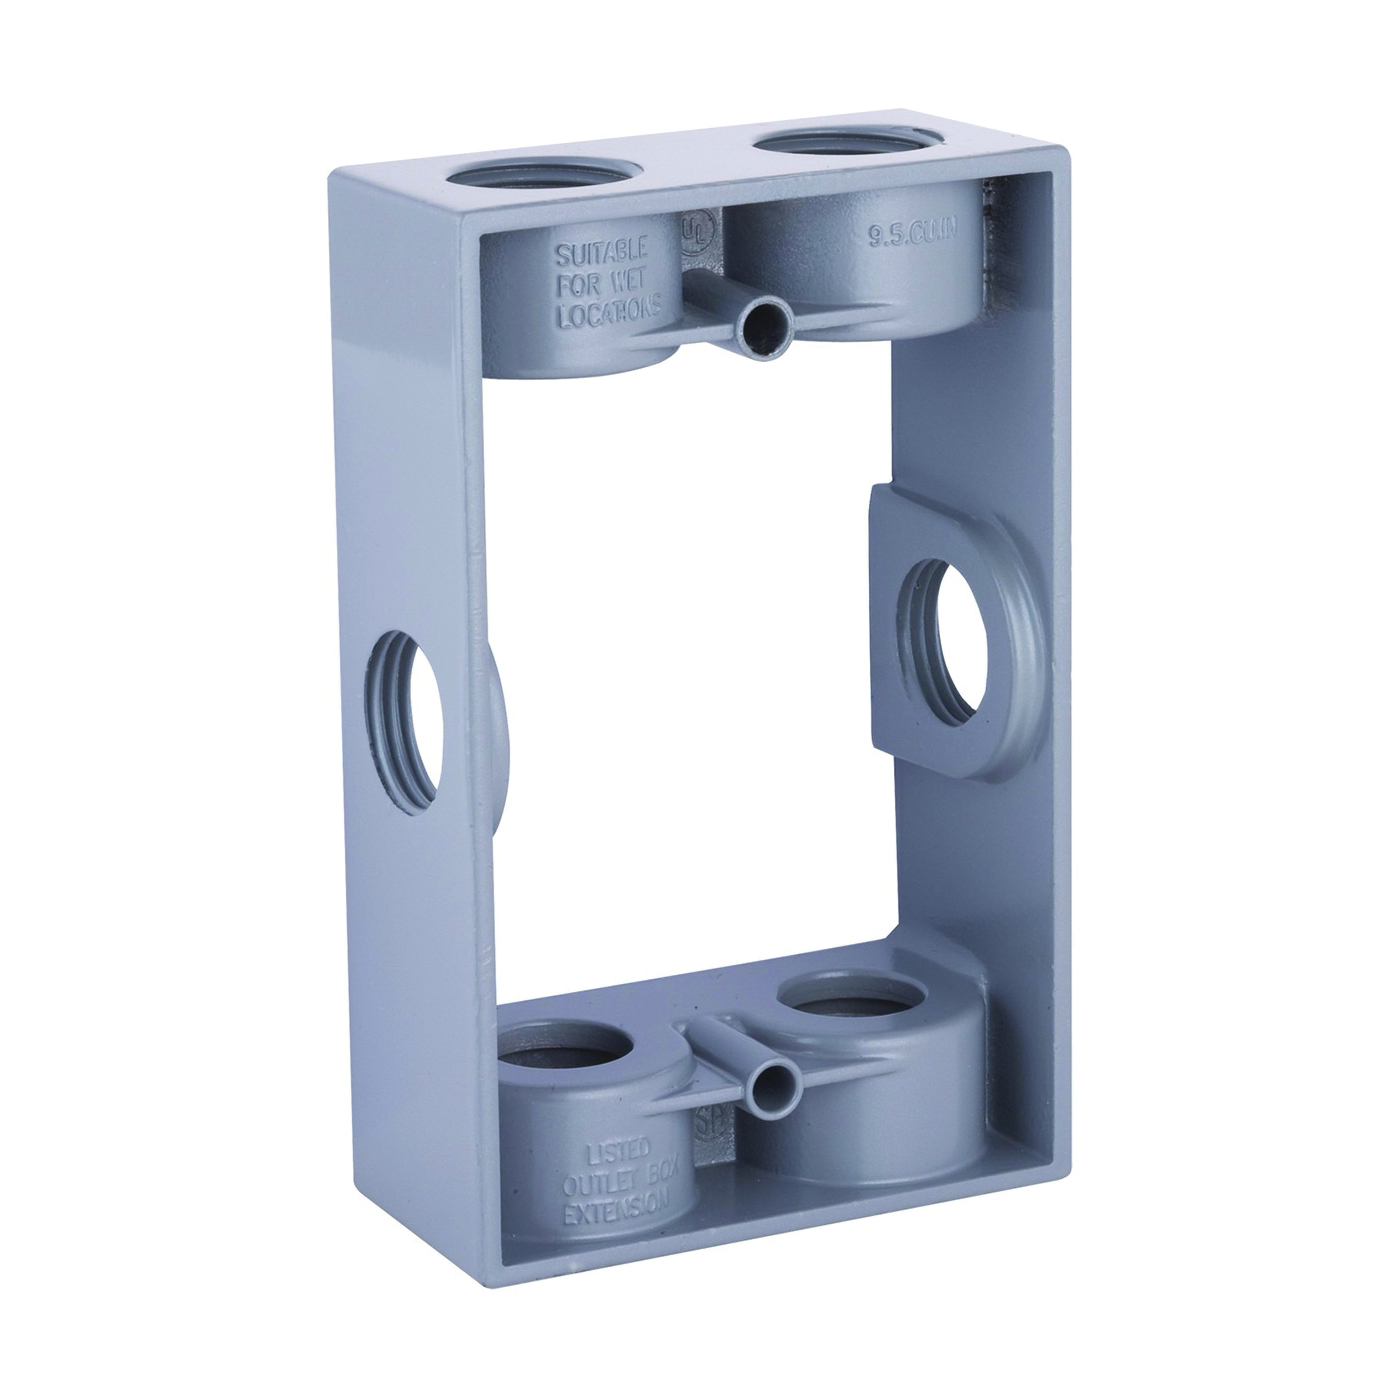 Picture of HUBBELL 5400-0 Extension Adapter, 5-1/4 in L, 3-1/2 in W, 1-Gang, 6-Knockout, Die-Cast Aluminum, Gray